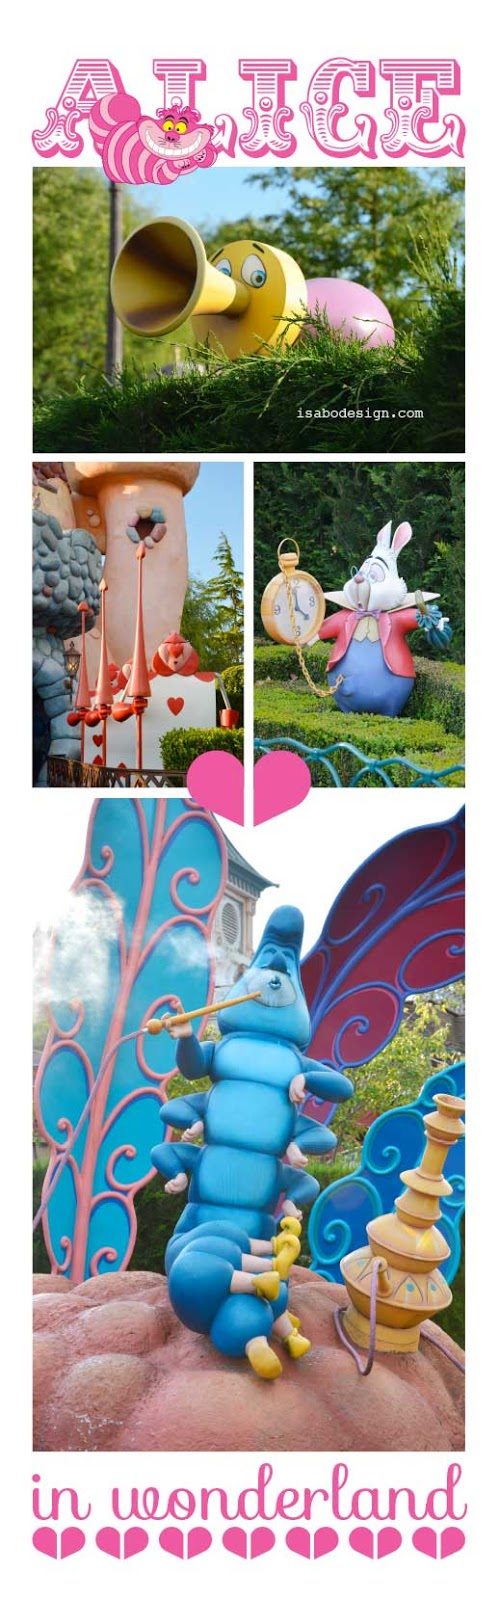 isabo-paris-disneyland-alice-wonderland